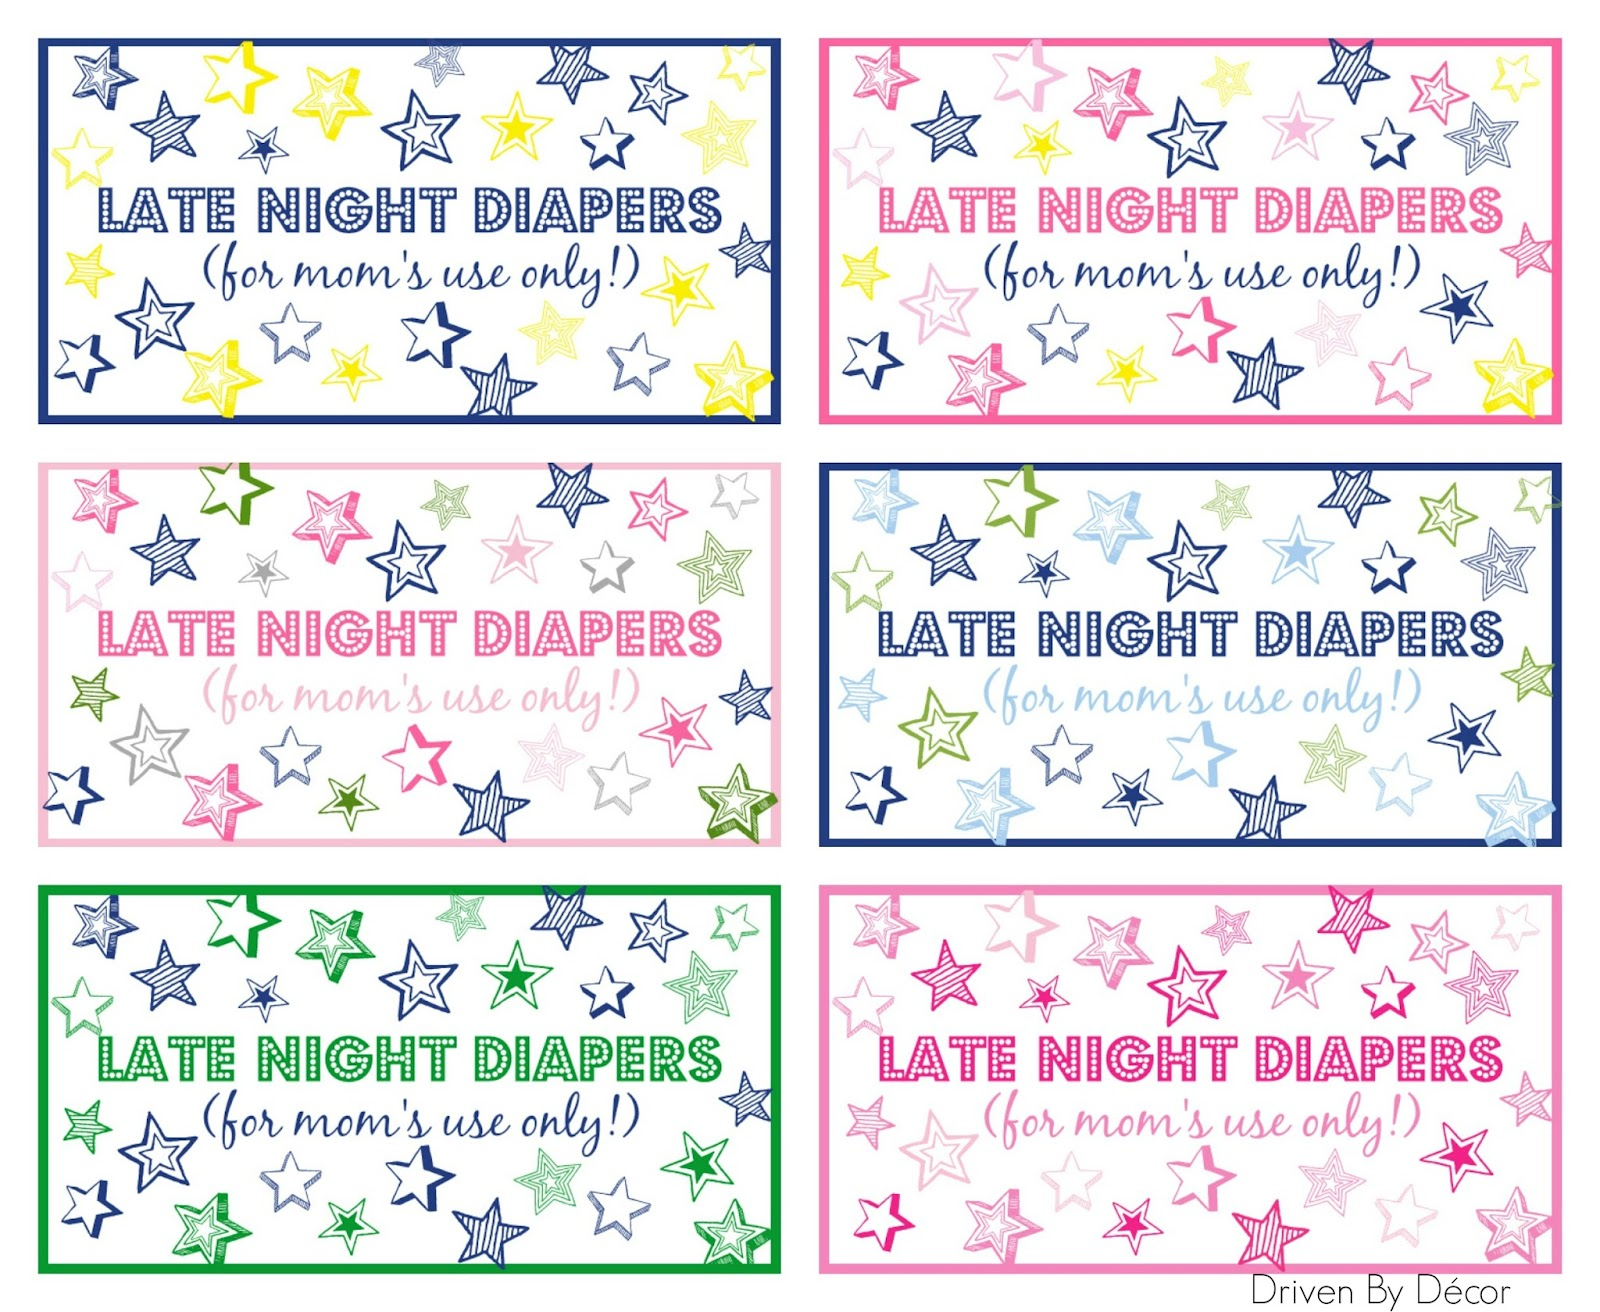 photograph relating to Late Night Diapers Printable named Late Evening Diapers Child Shower Printables Run by way of Decor